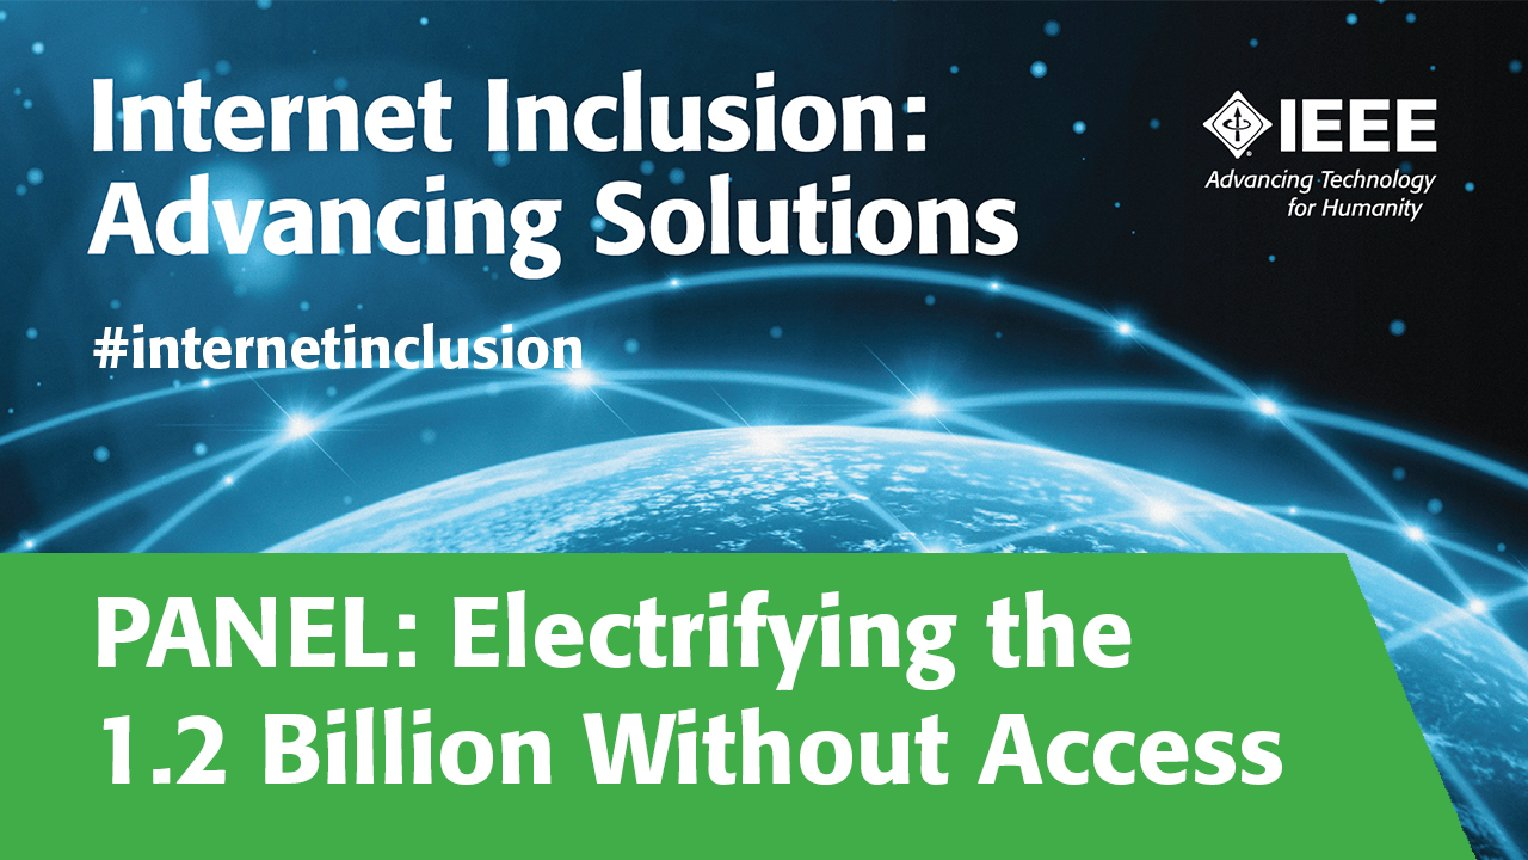 Electrifying the 1.2 Billion Without Access: An Internet Inclusion Panel Discussion